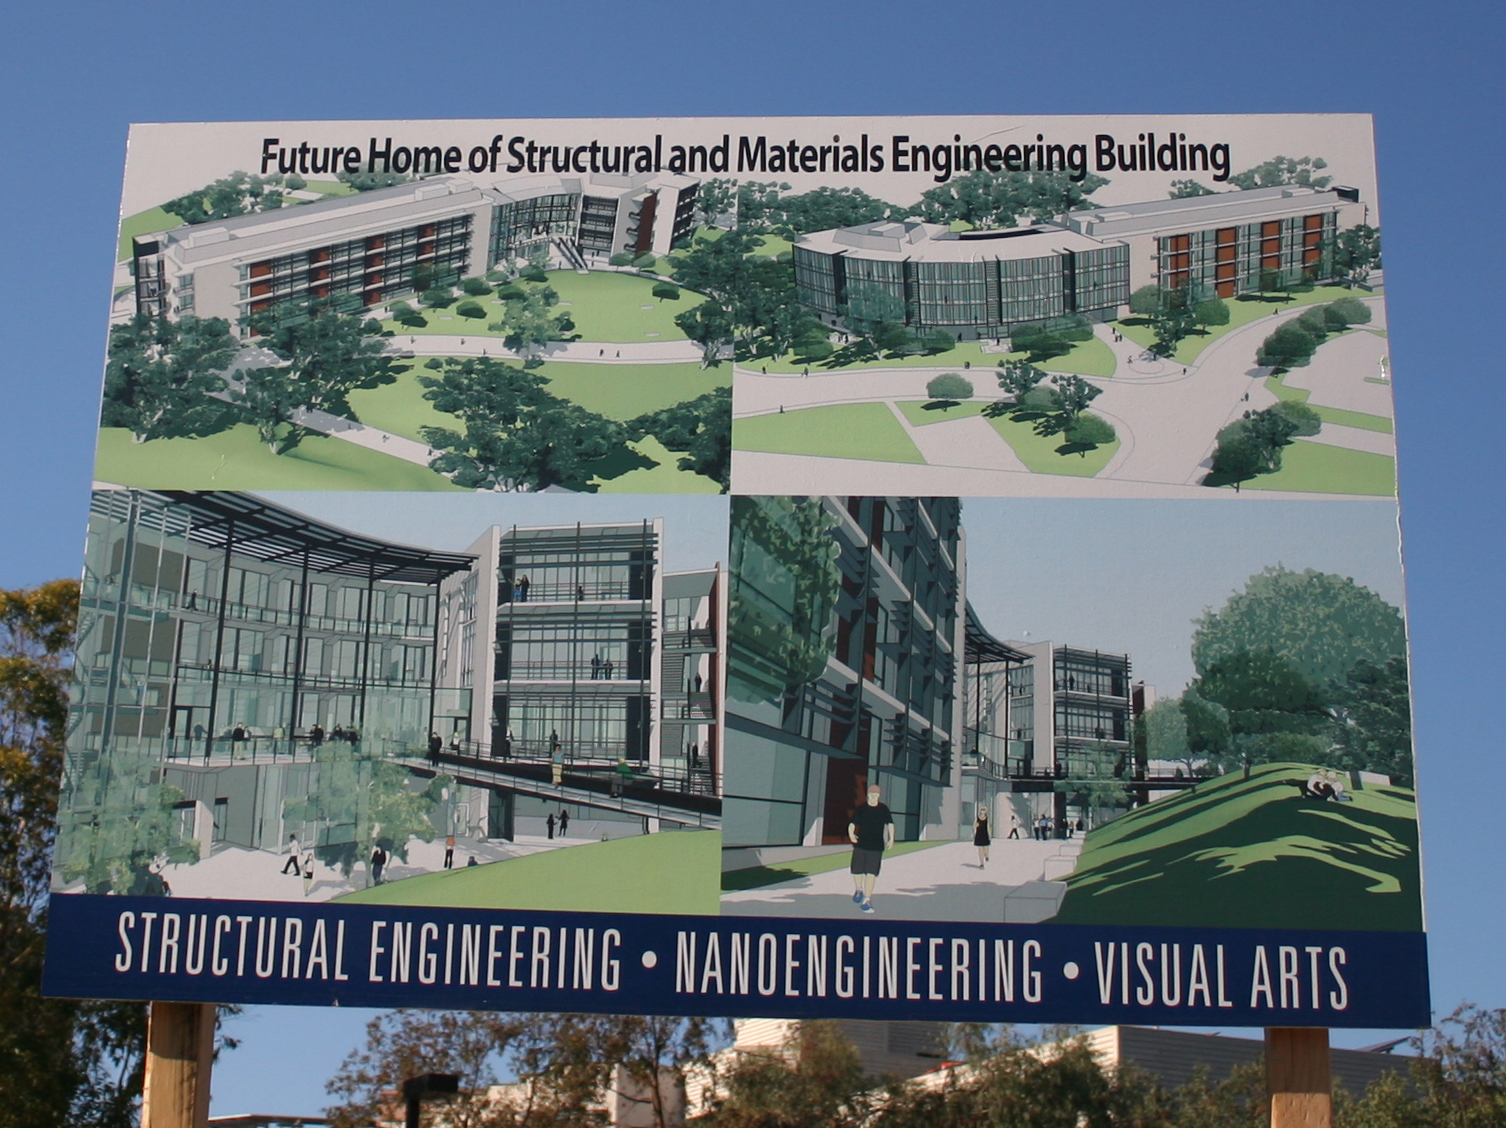 Groundbreaking for 11th Major Engineering and Technology Building at